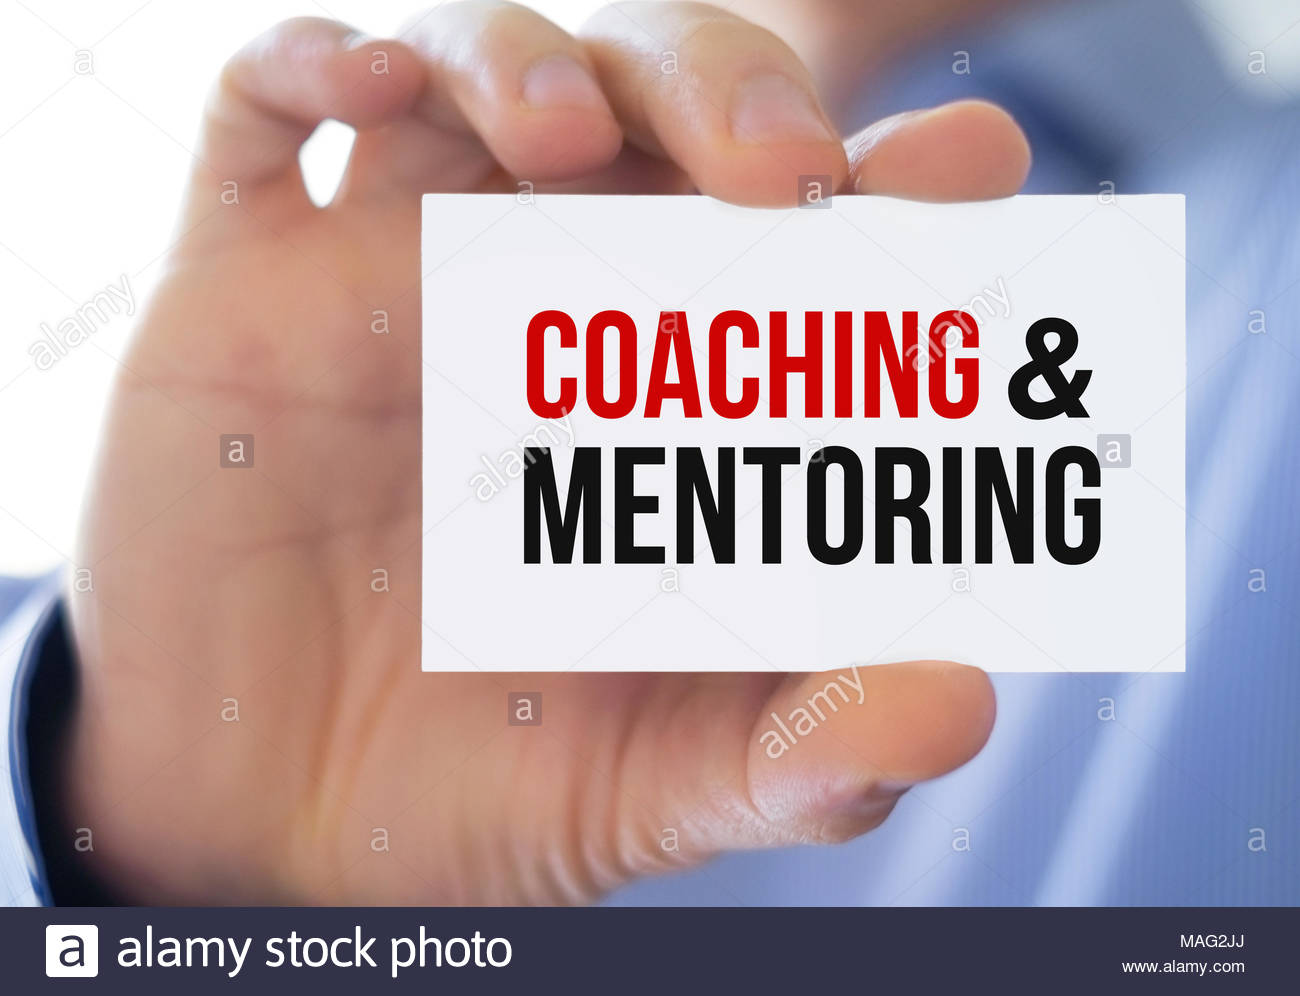 Coaching and Mentoring - Stock Image